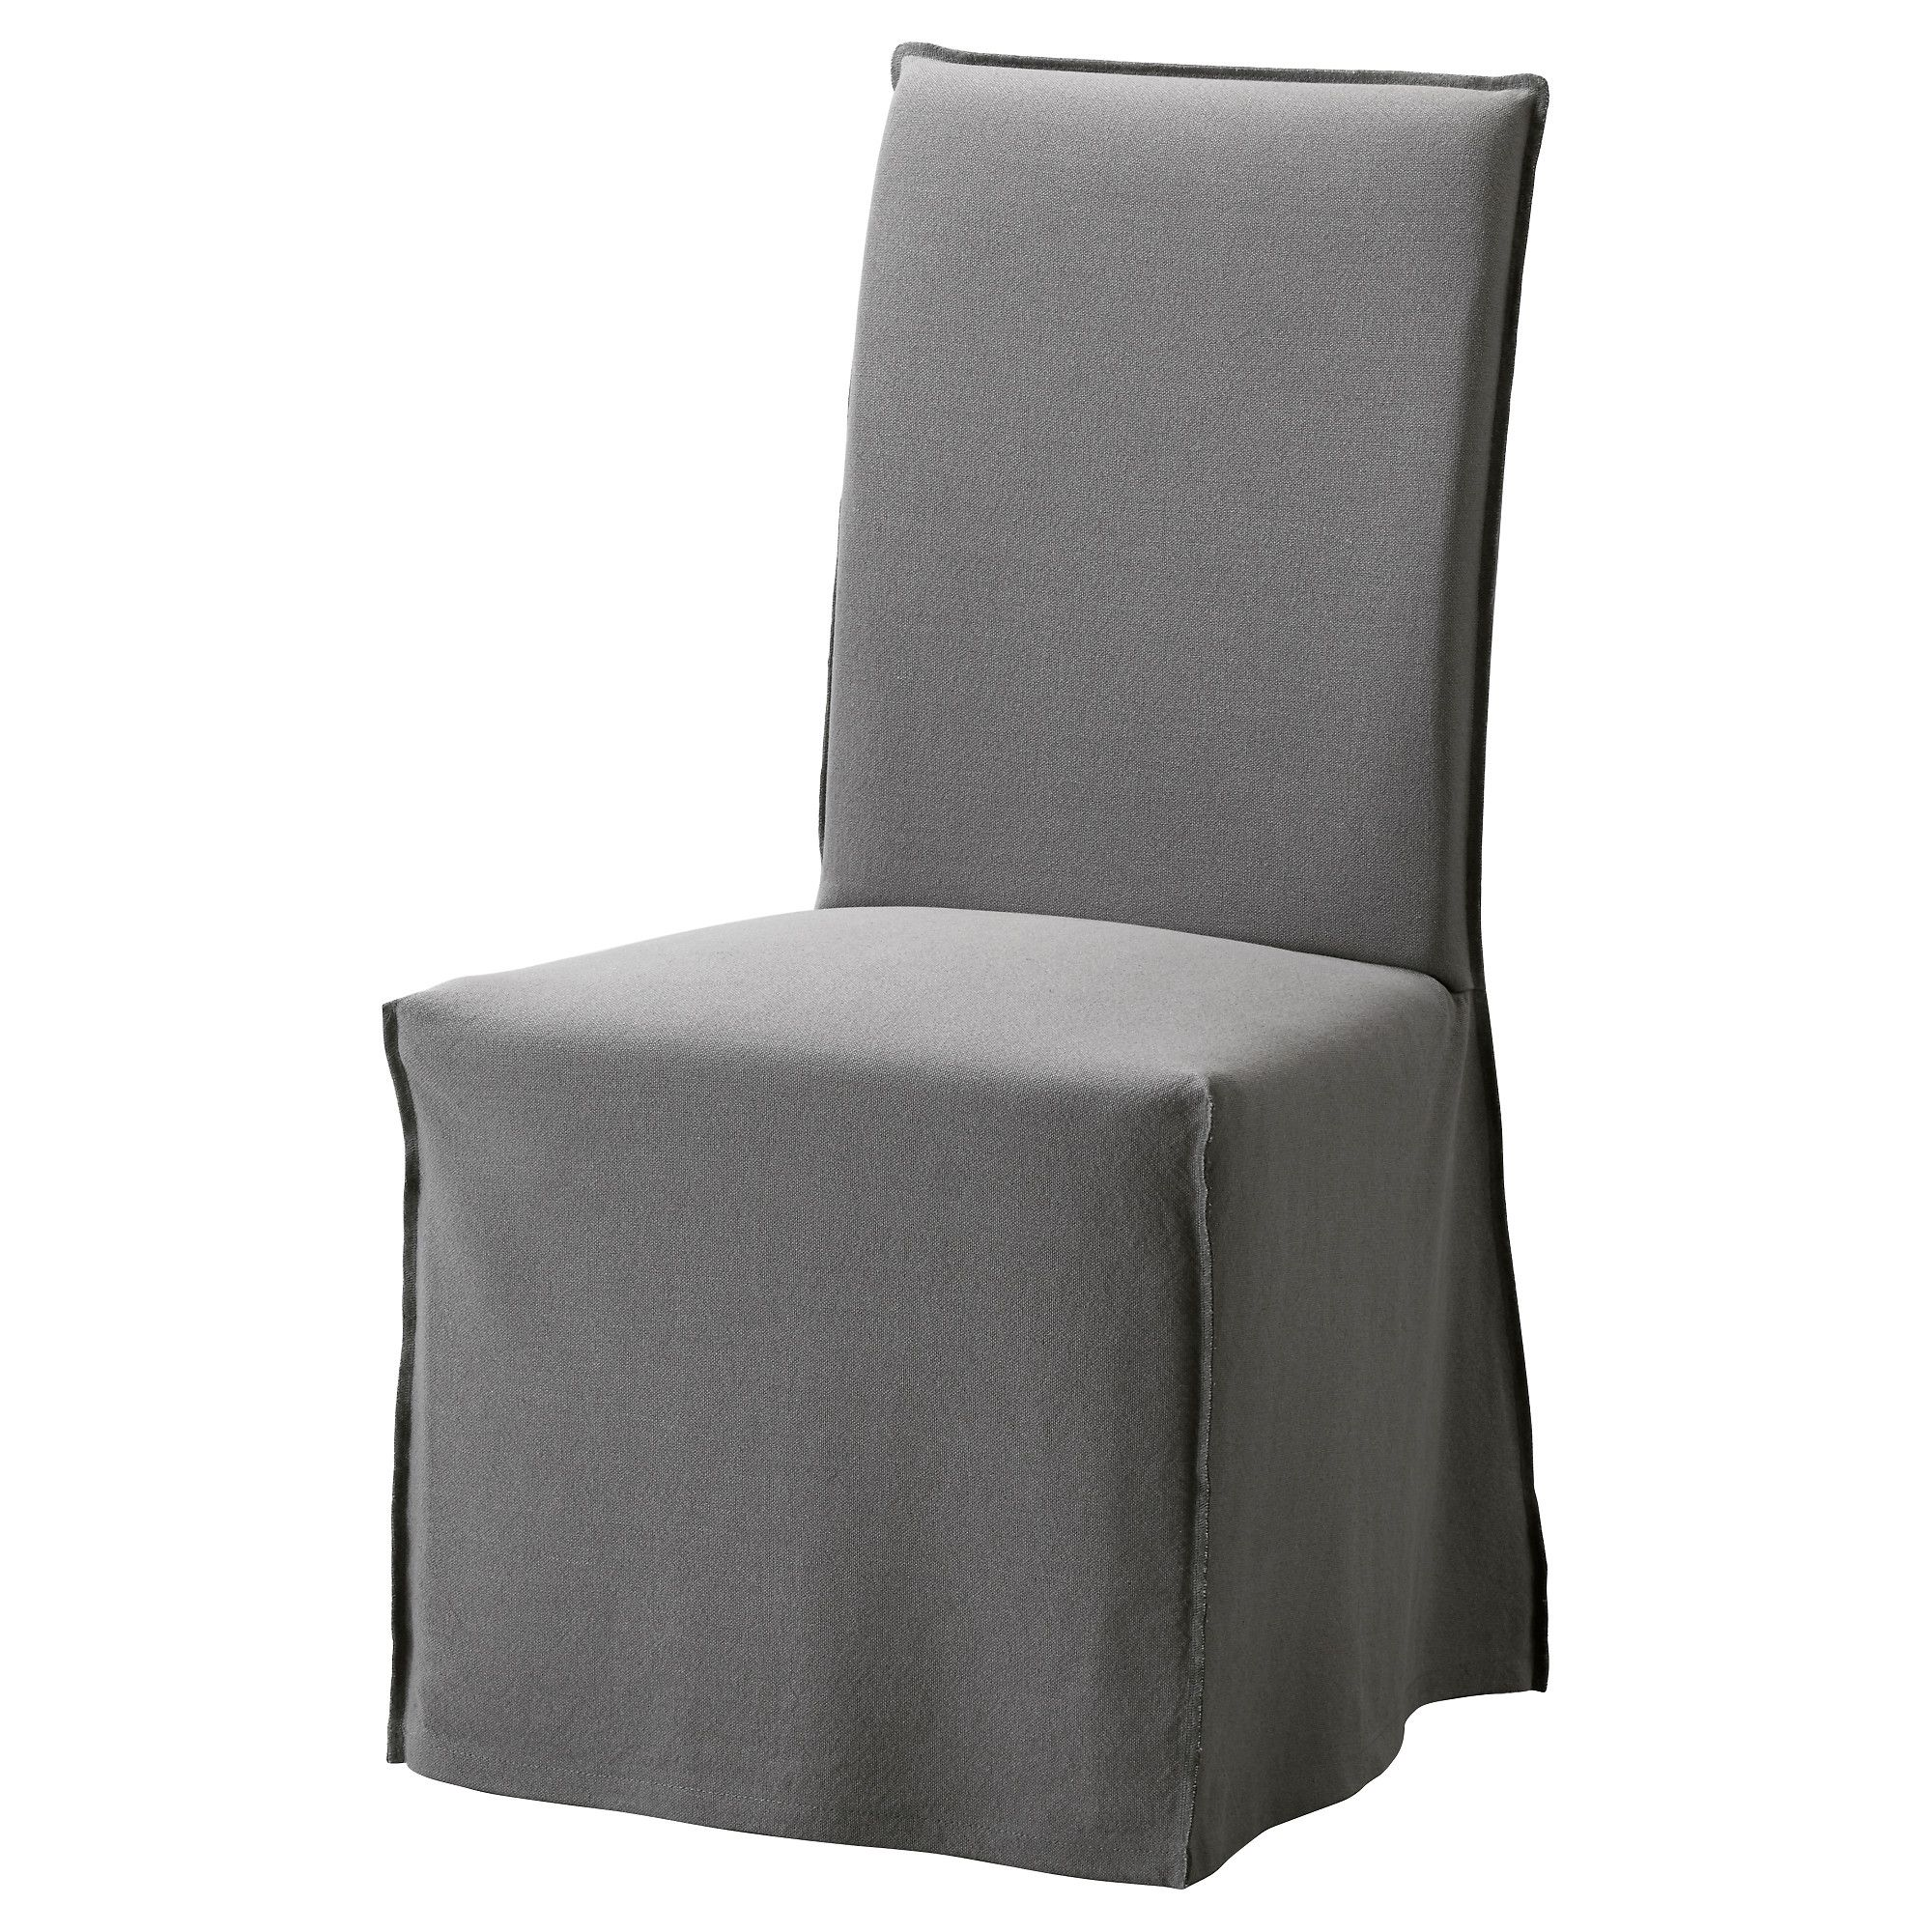 Us Furniture And Home Furnishings Slipcovers For Chairs